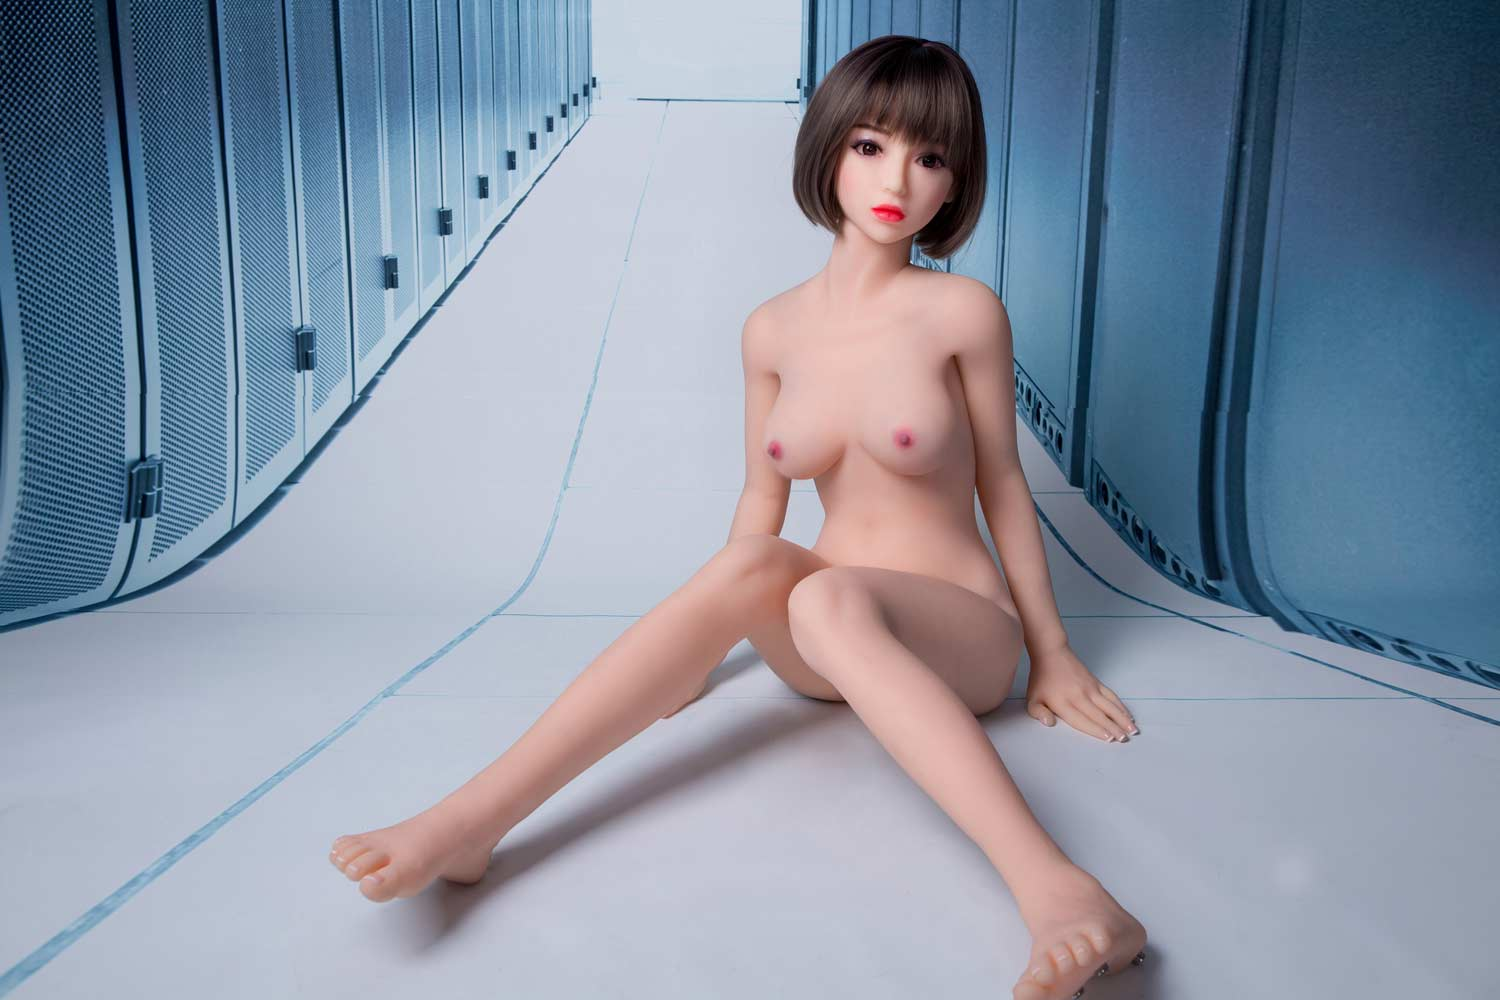 Sex doll with pink nipples